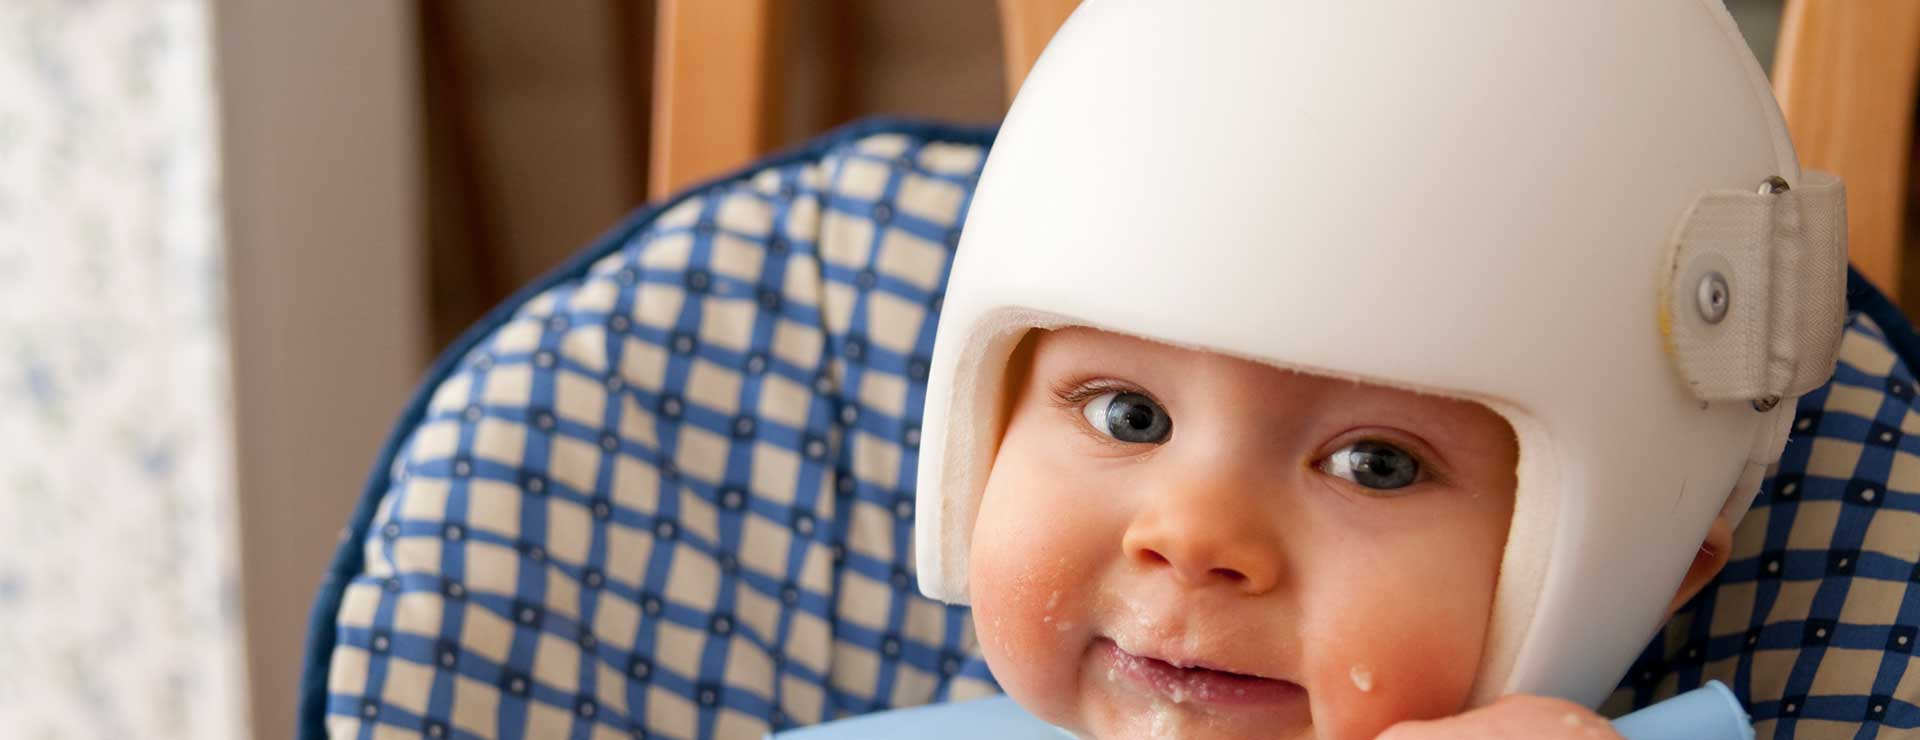 baby with a cranial correction helmet